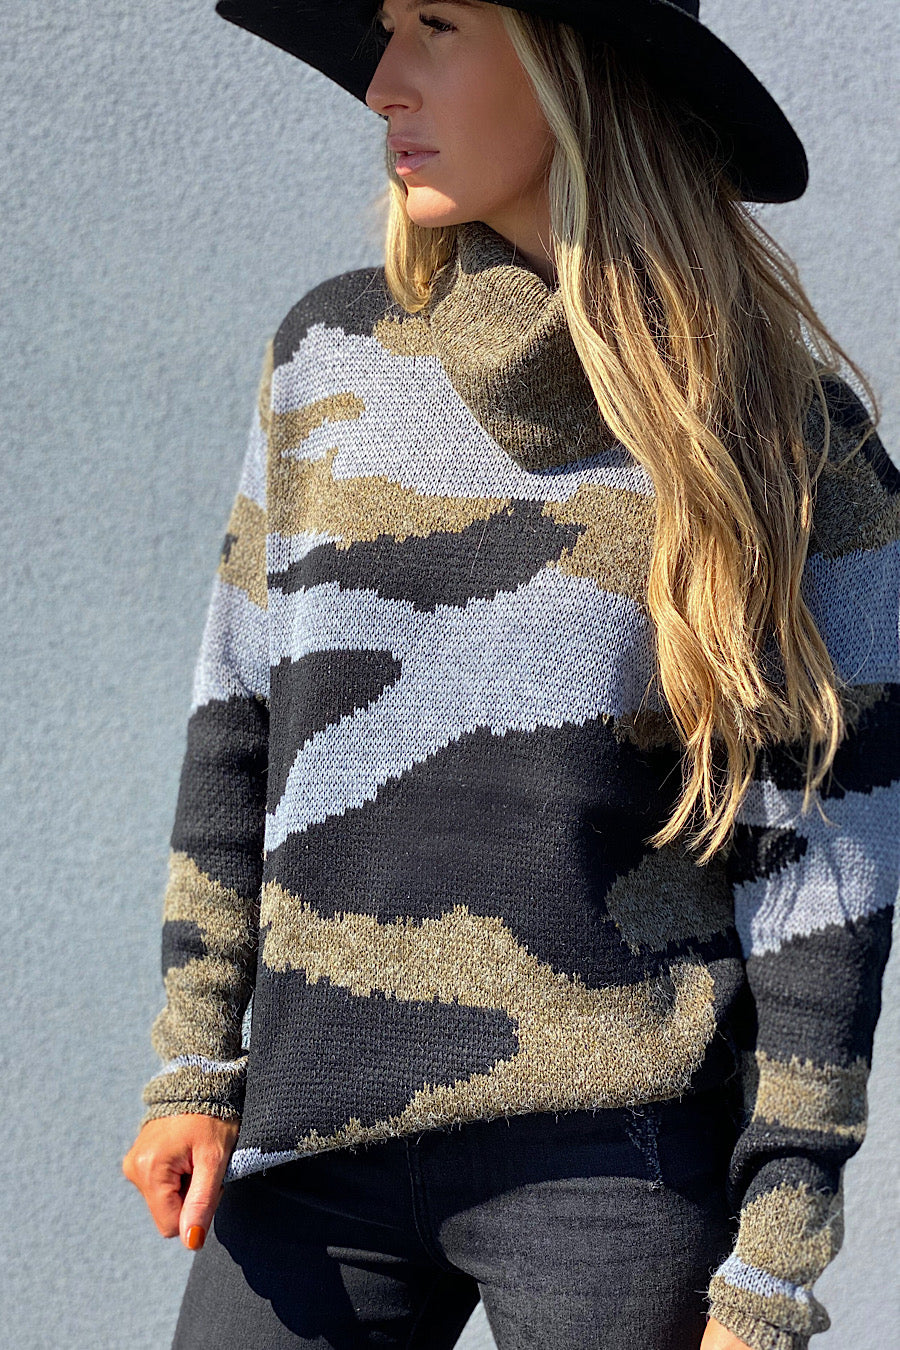 At Attention Camo Turtleneck Sweater